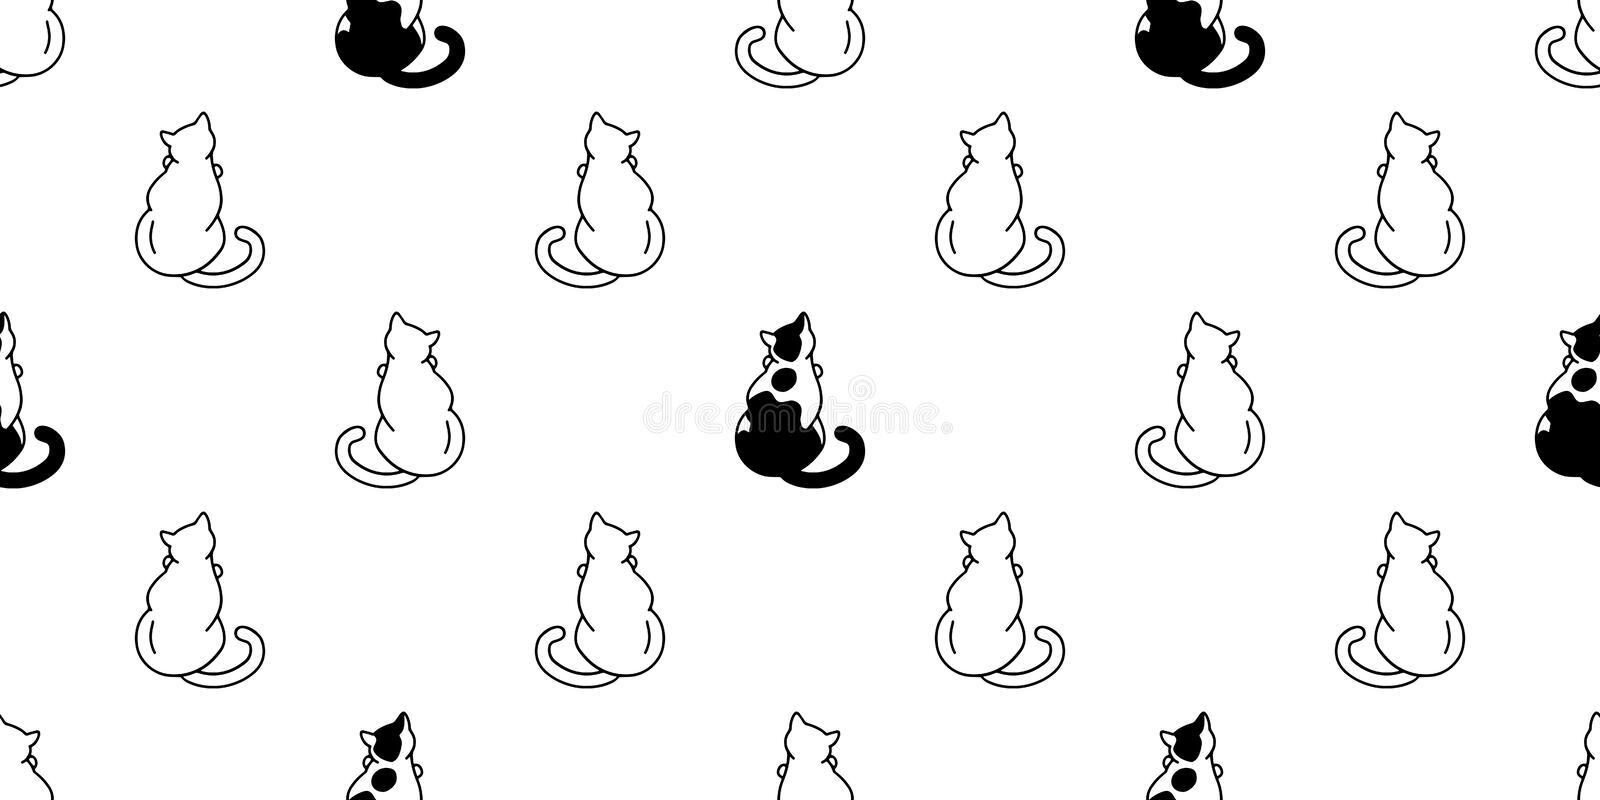 Cute Black And White Cats Stock Vector Illustration Of Cats 94663842